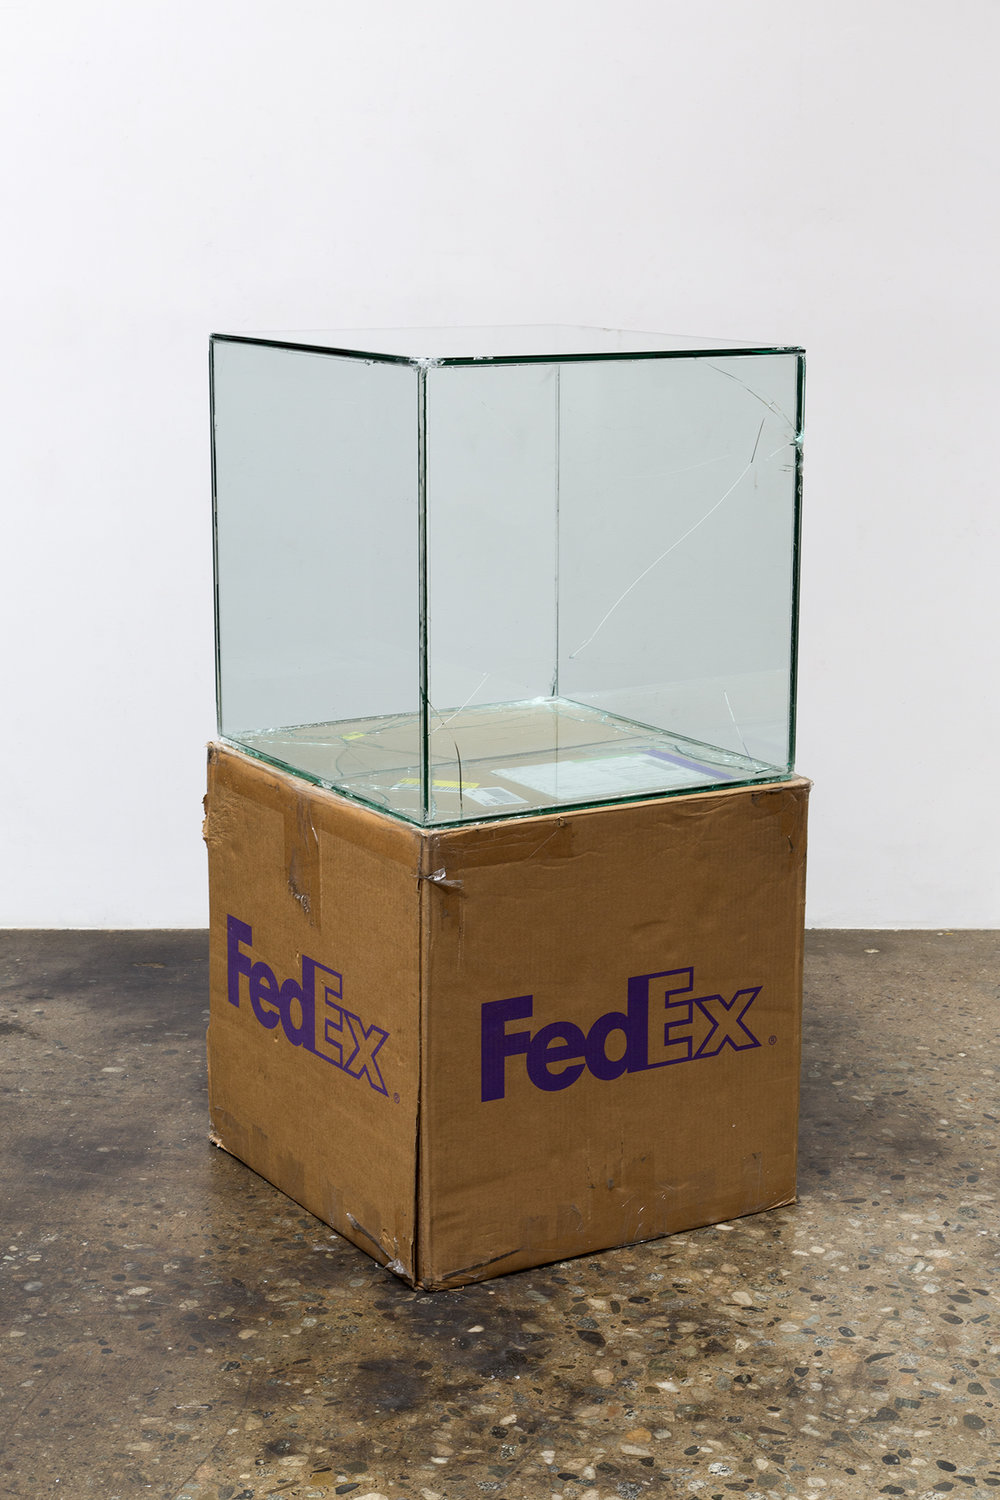 FedEx Large Kraft Box 2008 FEDEX 330510 REV 6/08 GP, International Priority, Los Angeles–Tokyo trk#778608512056, March 9–13, 2017    2017–   Laminated glass, FedEx shipping box, accrued FedEx shipping and tracking labels, silicone, metal, tape  24 x 24 x 24 inches   Transparencies, 2017